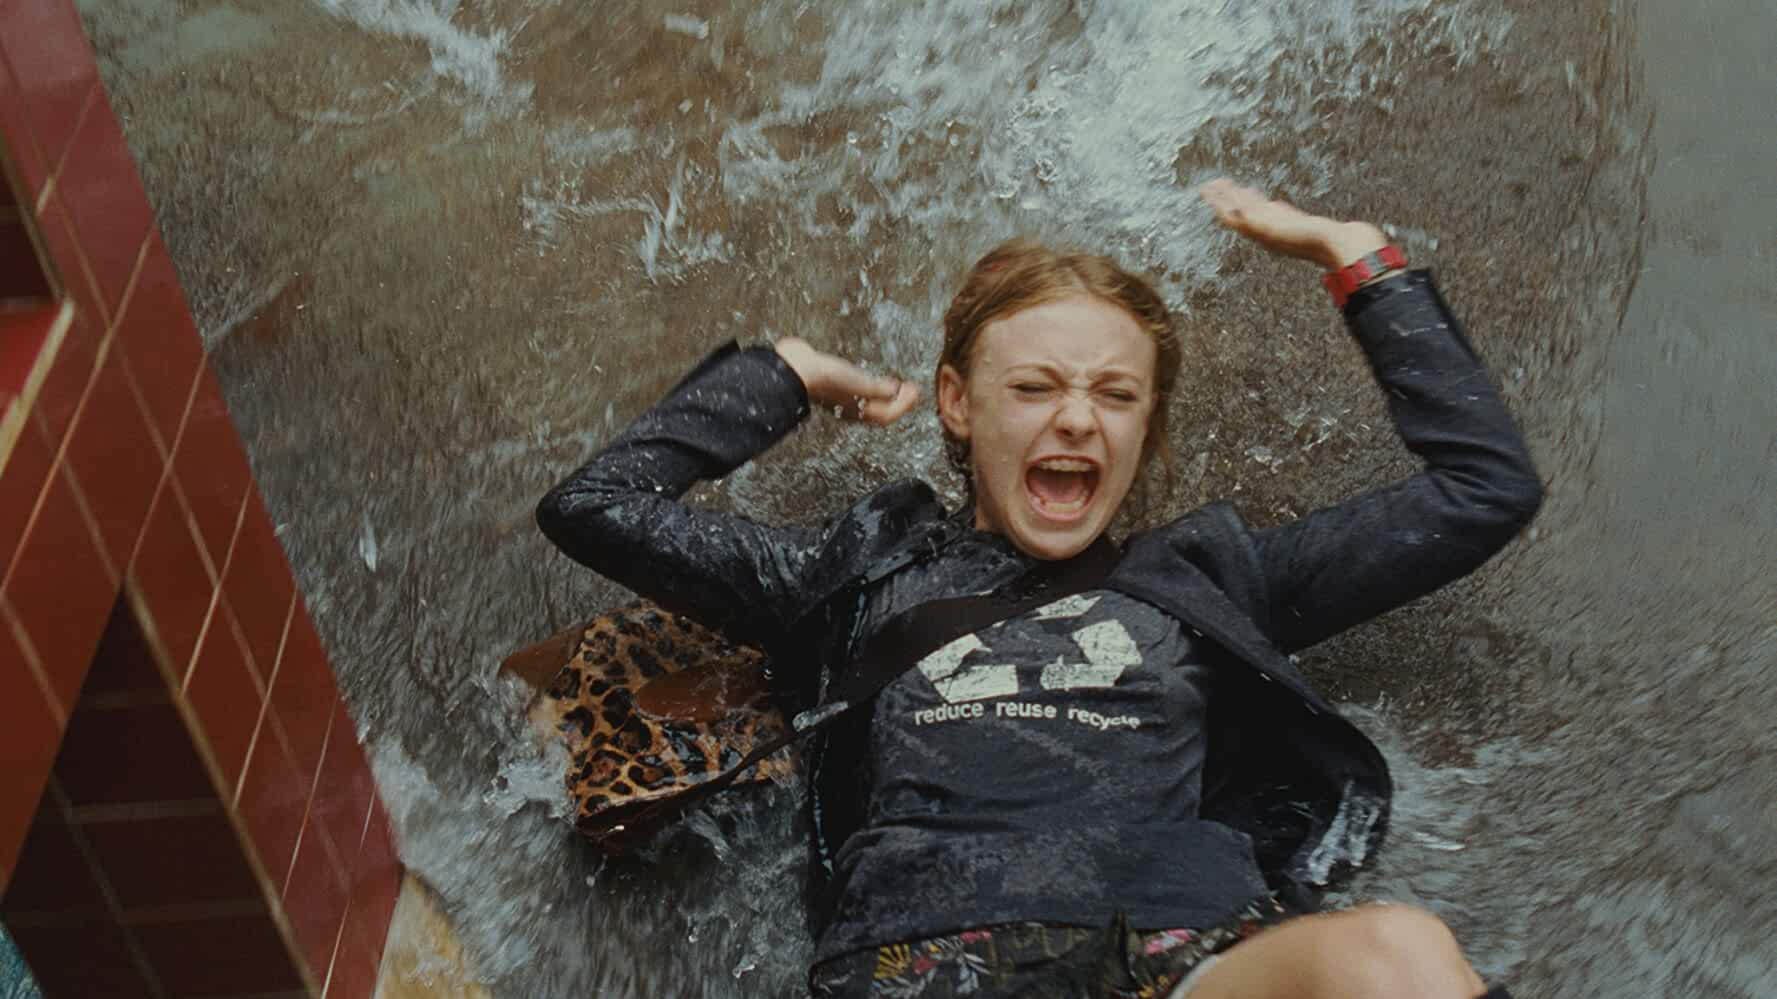 Dakota Fanning in Push (2009)